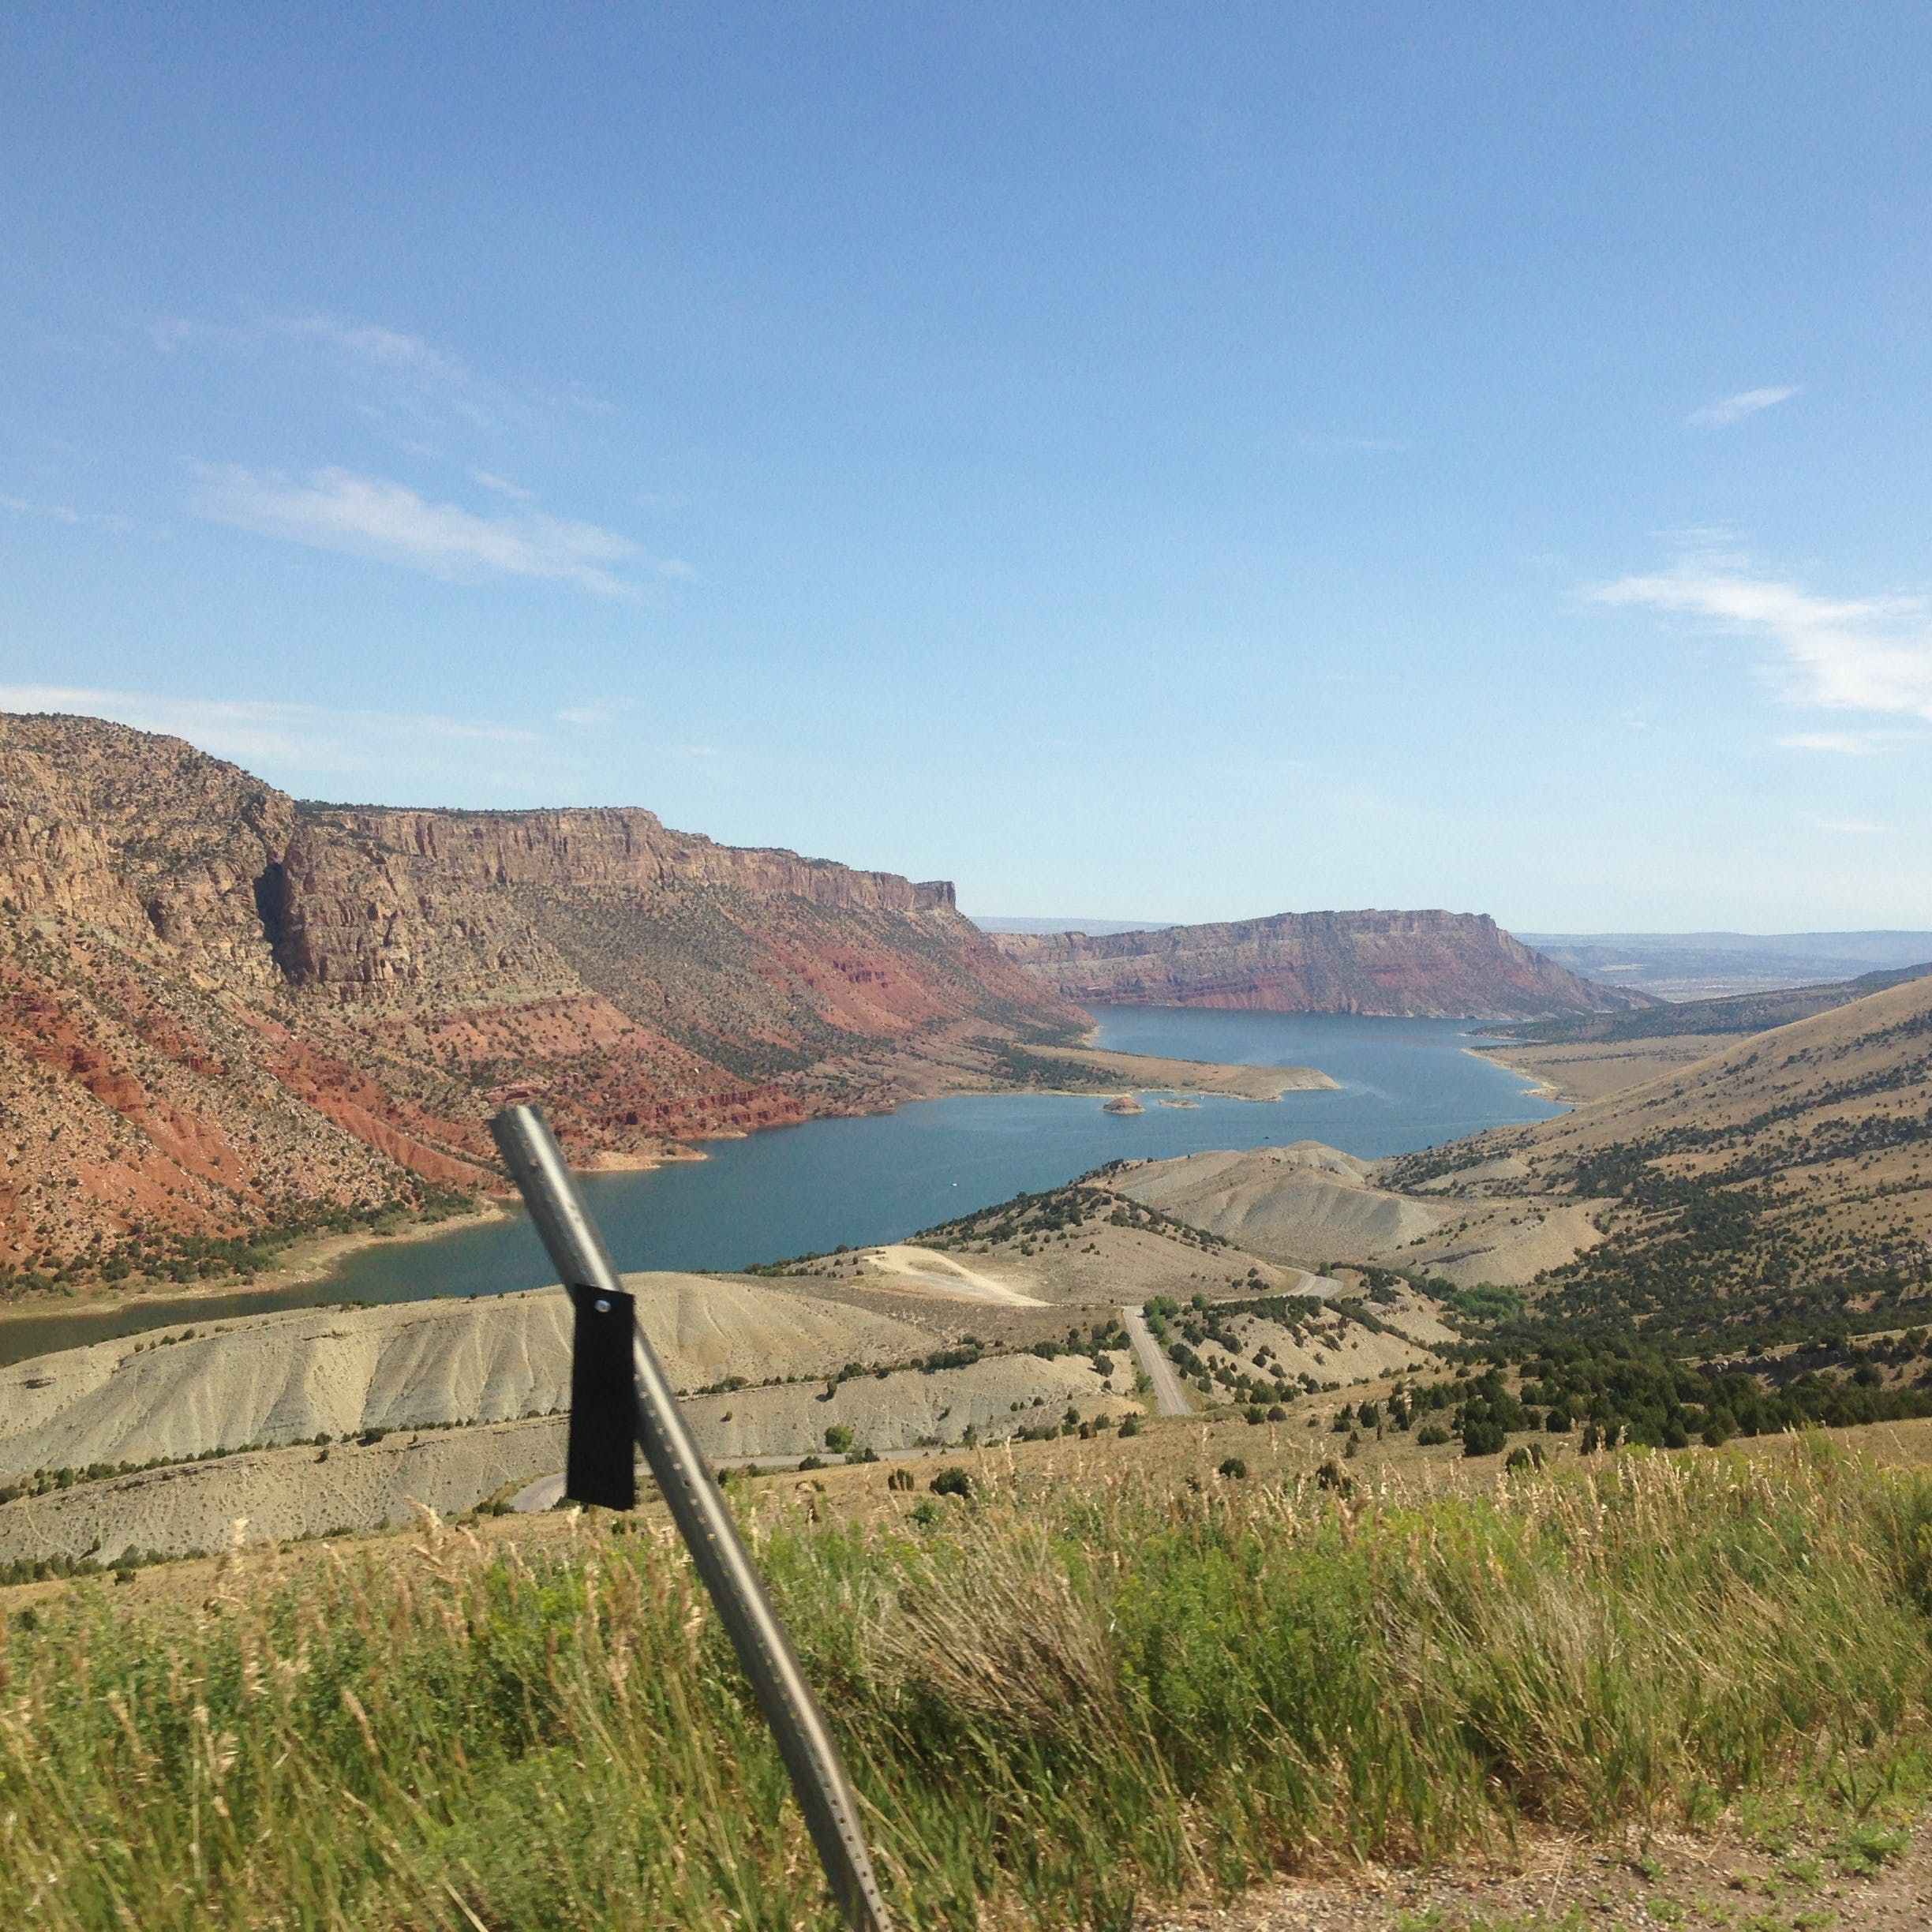 Flaming Gorge National Recreation Area